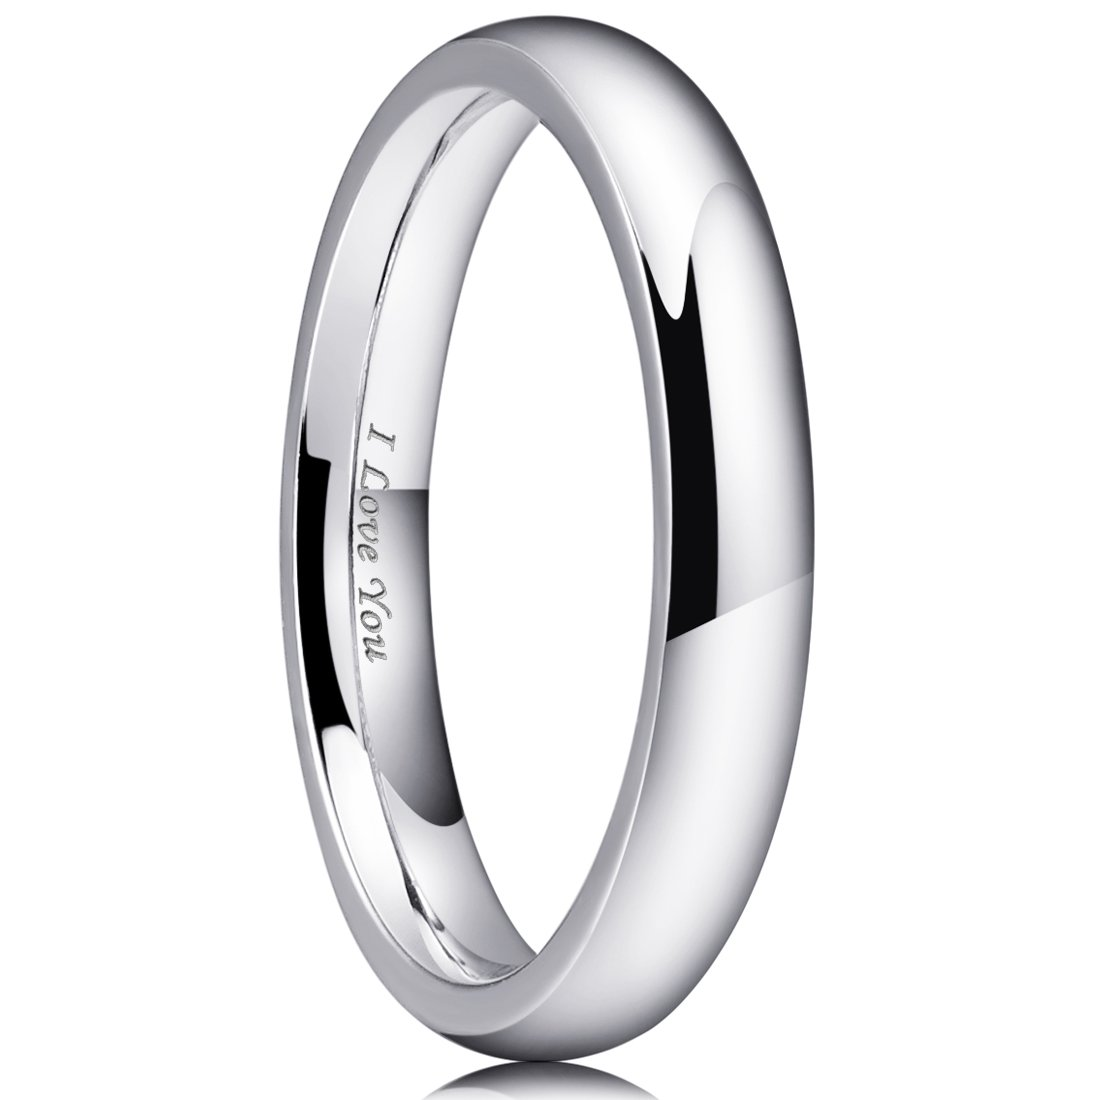 King Will 3mm Stainless Steel Ring Original Color Full High Polished with Laser Etched I Love You(10)